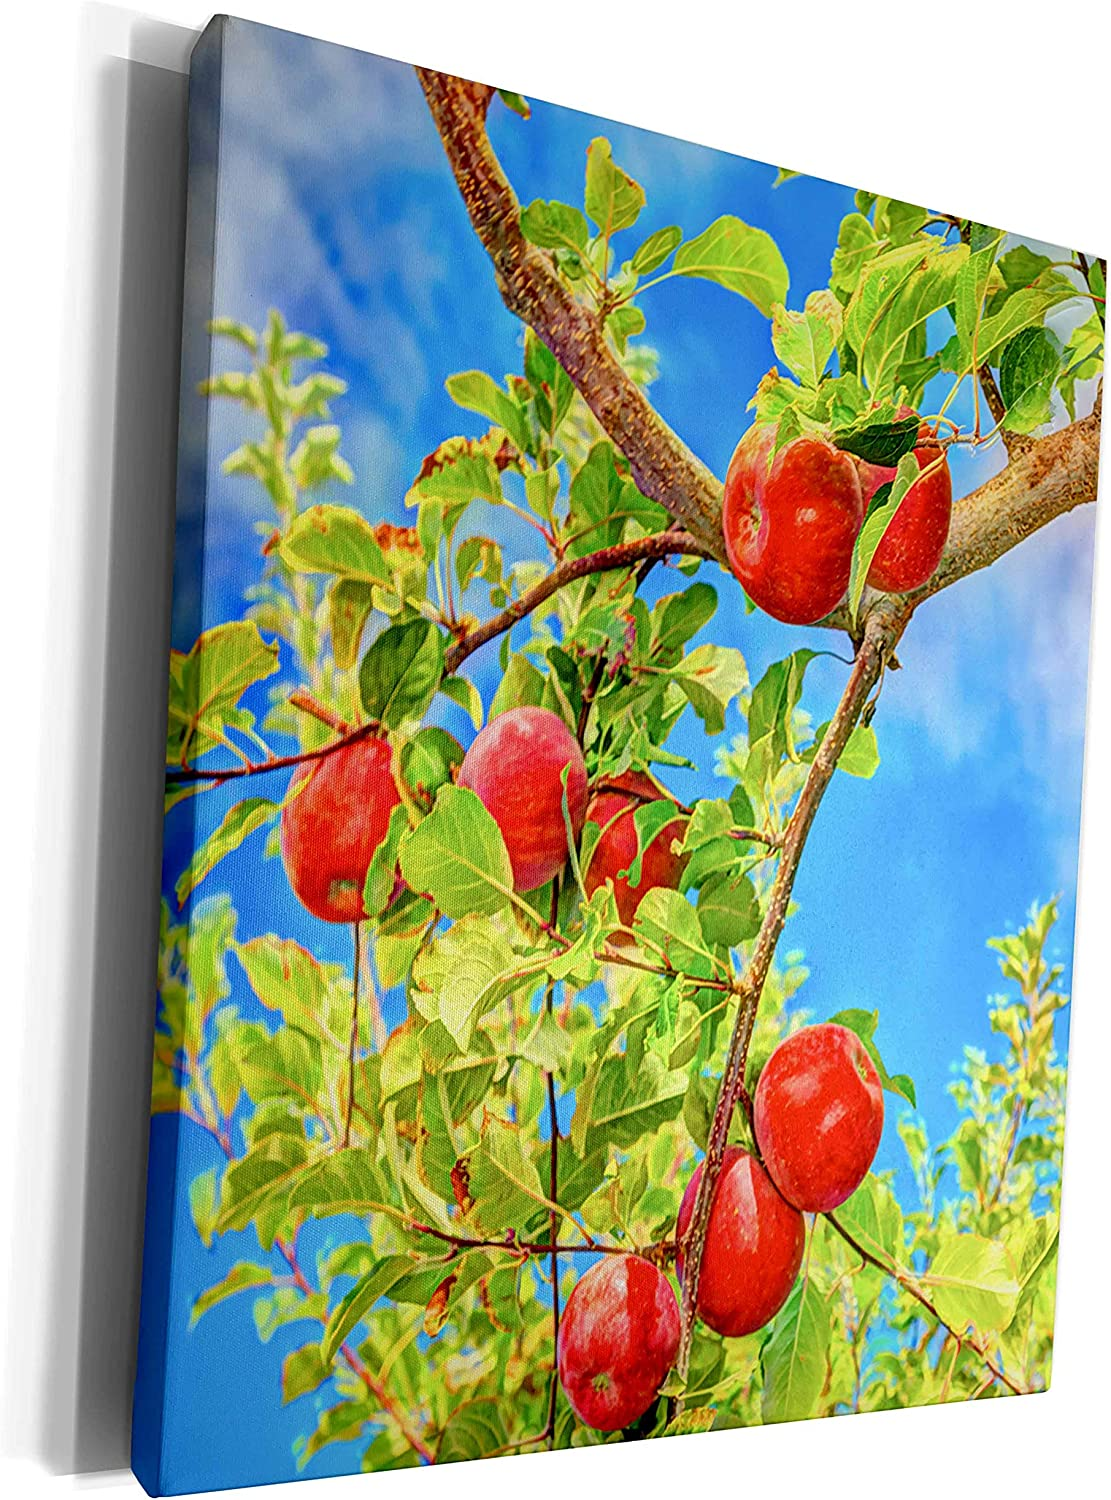 3dRose Danita Delimont - Fruits - Jonagold Apples on Trees, Yakima Valley, USA - Museum Grade Canvas Wrap (cw_231826_1)